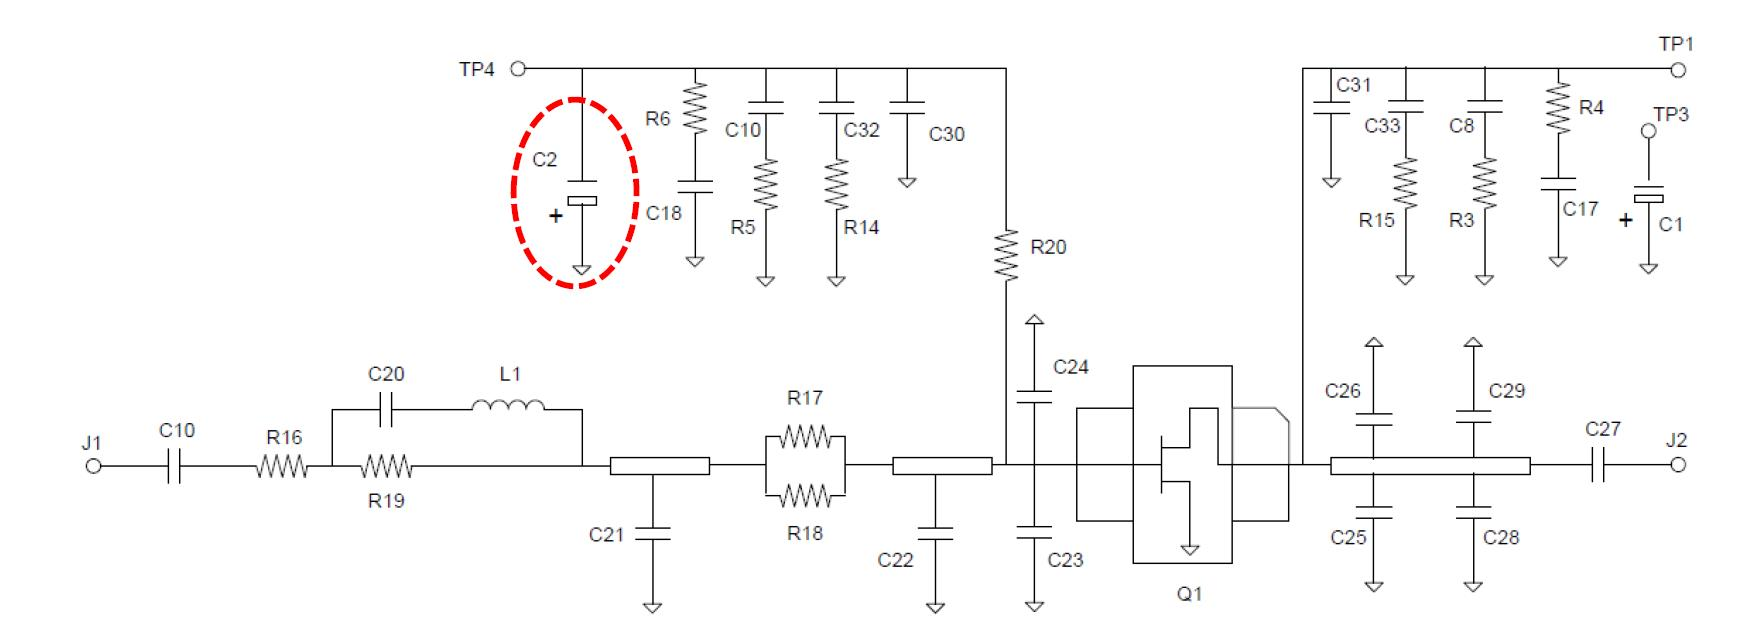 Circuit diagram of GaN QPD1008 connection as an amplifier for frequency range from 0.96 GHz to 1.215 GHz;